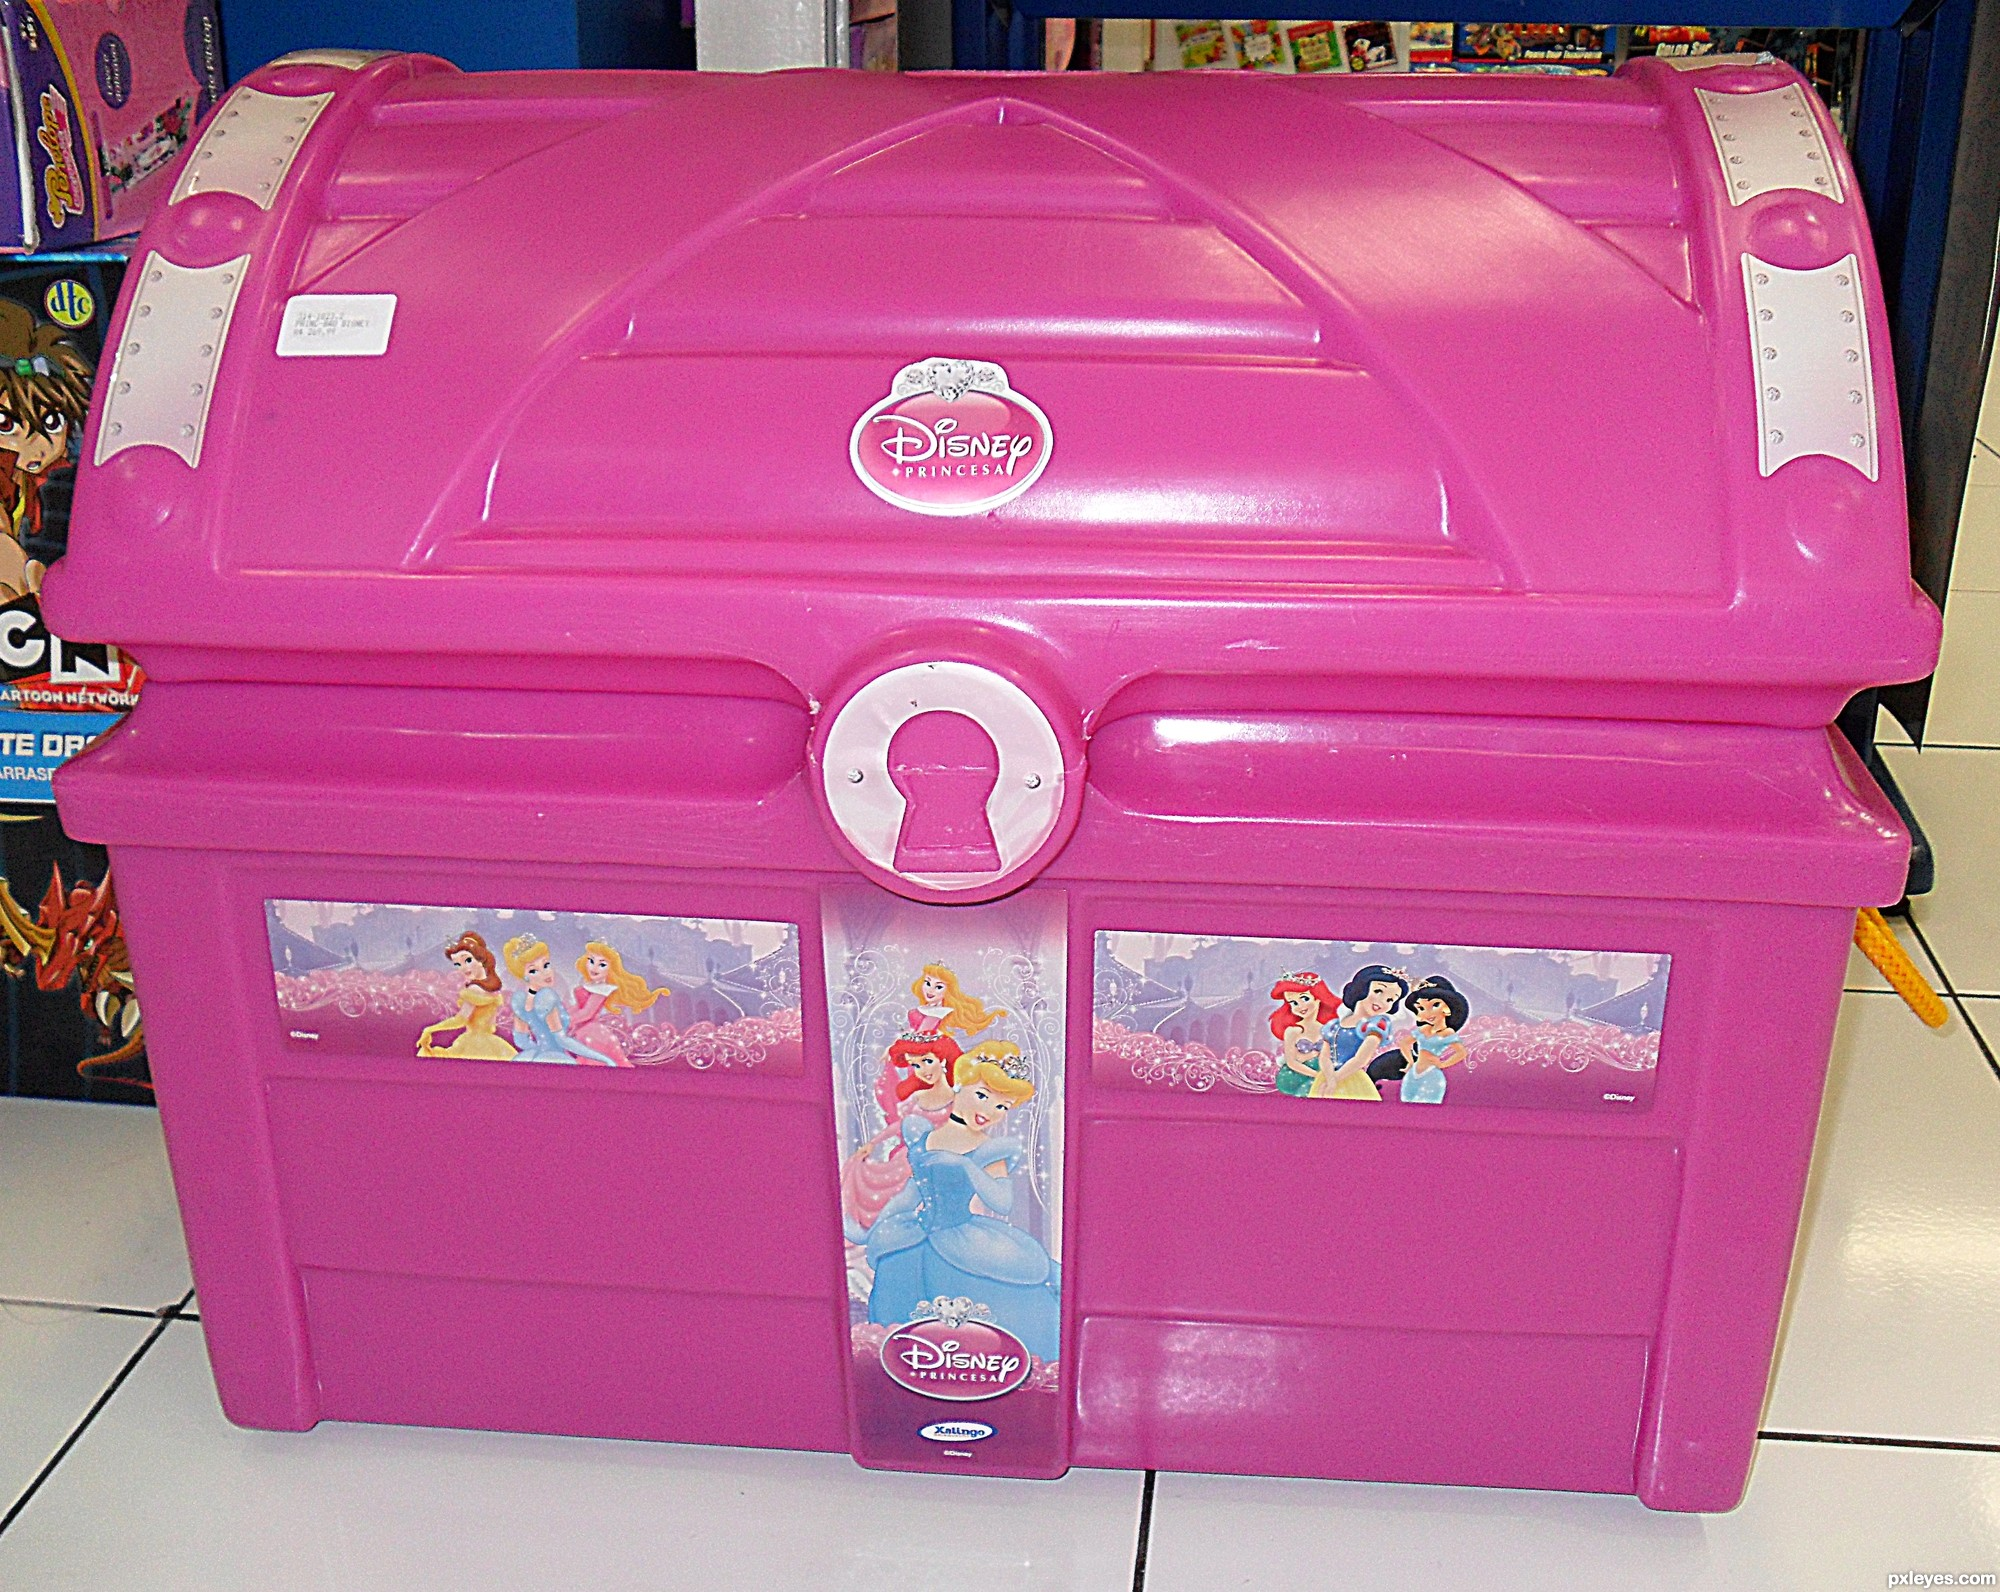 Carnival Toy Box Pink: Toy Boxes Photography Contest (15305), Pictures Page 1